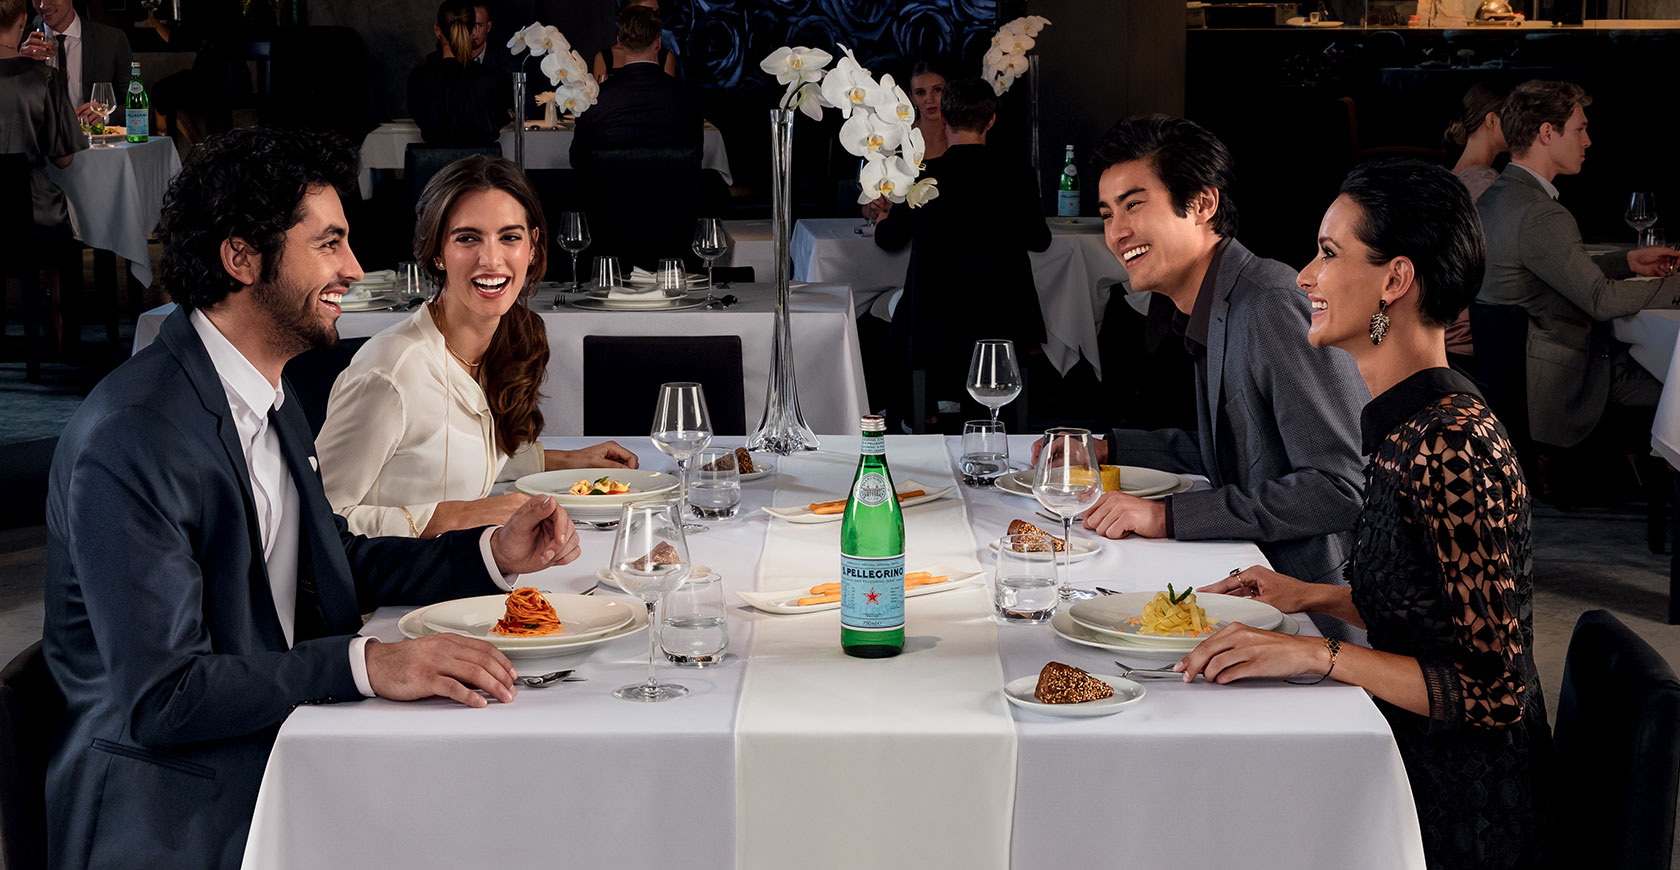 Enhance your moments with S.Pellegrino water, a timeless icon of Italian style